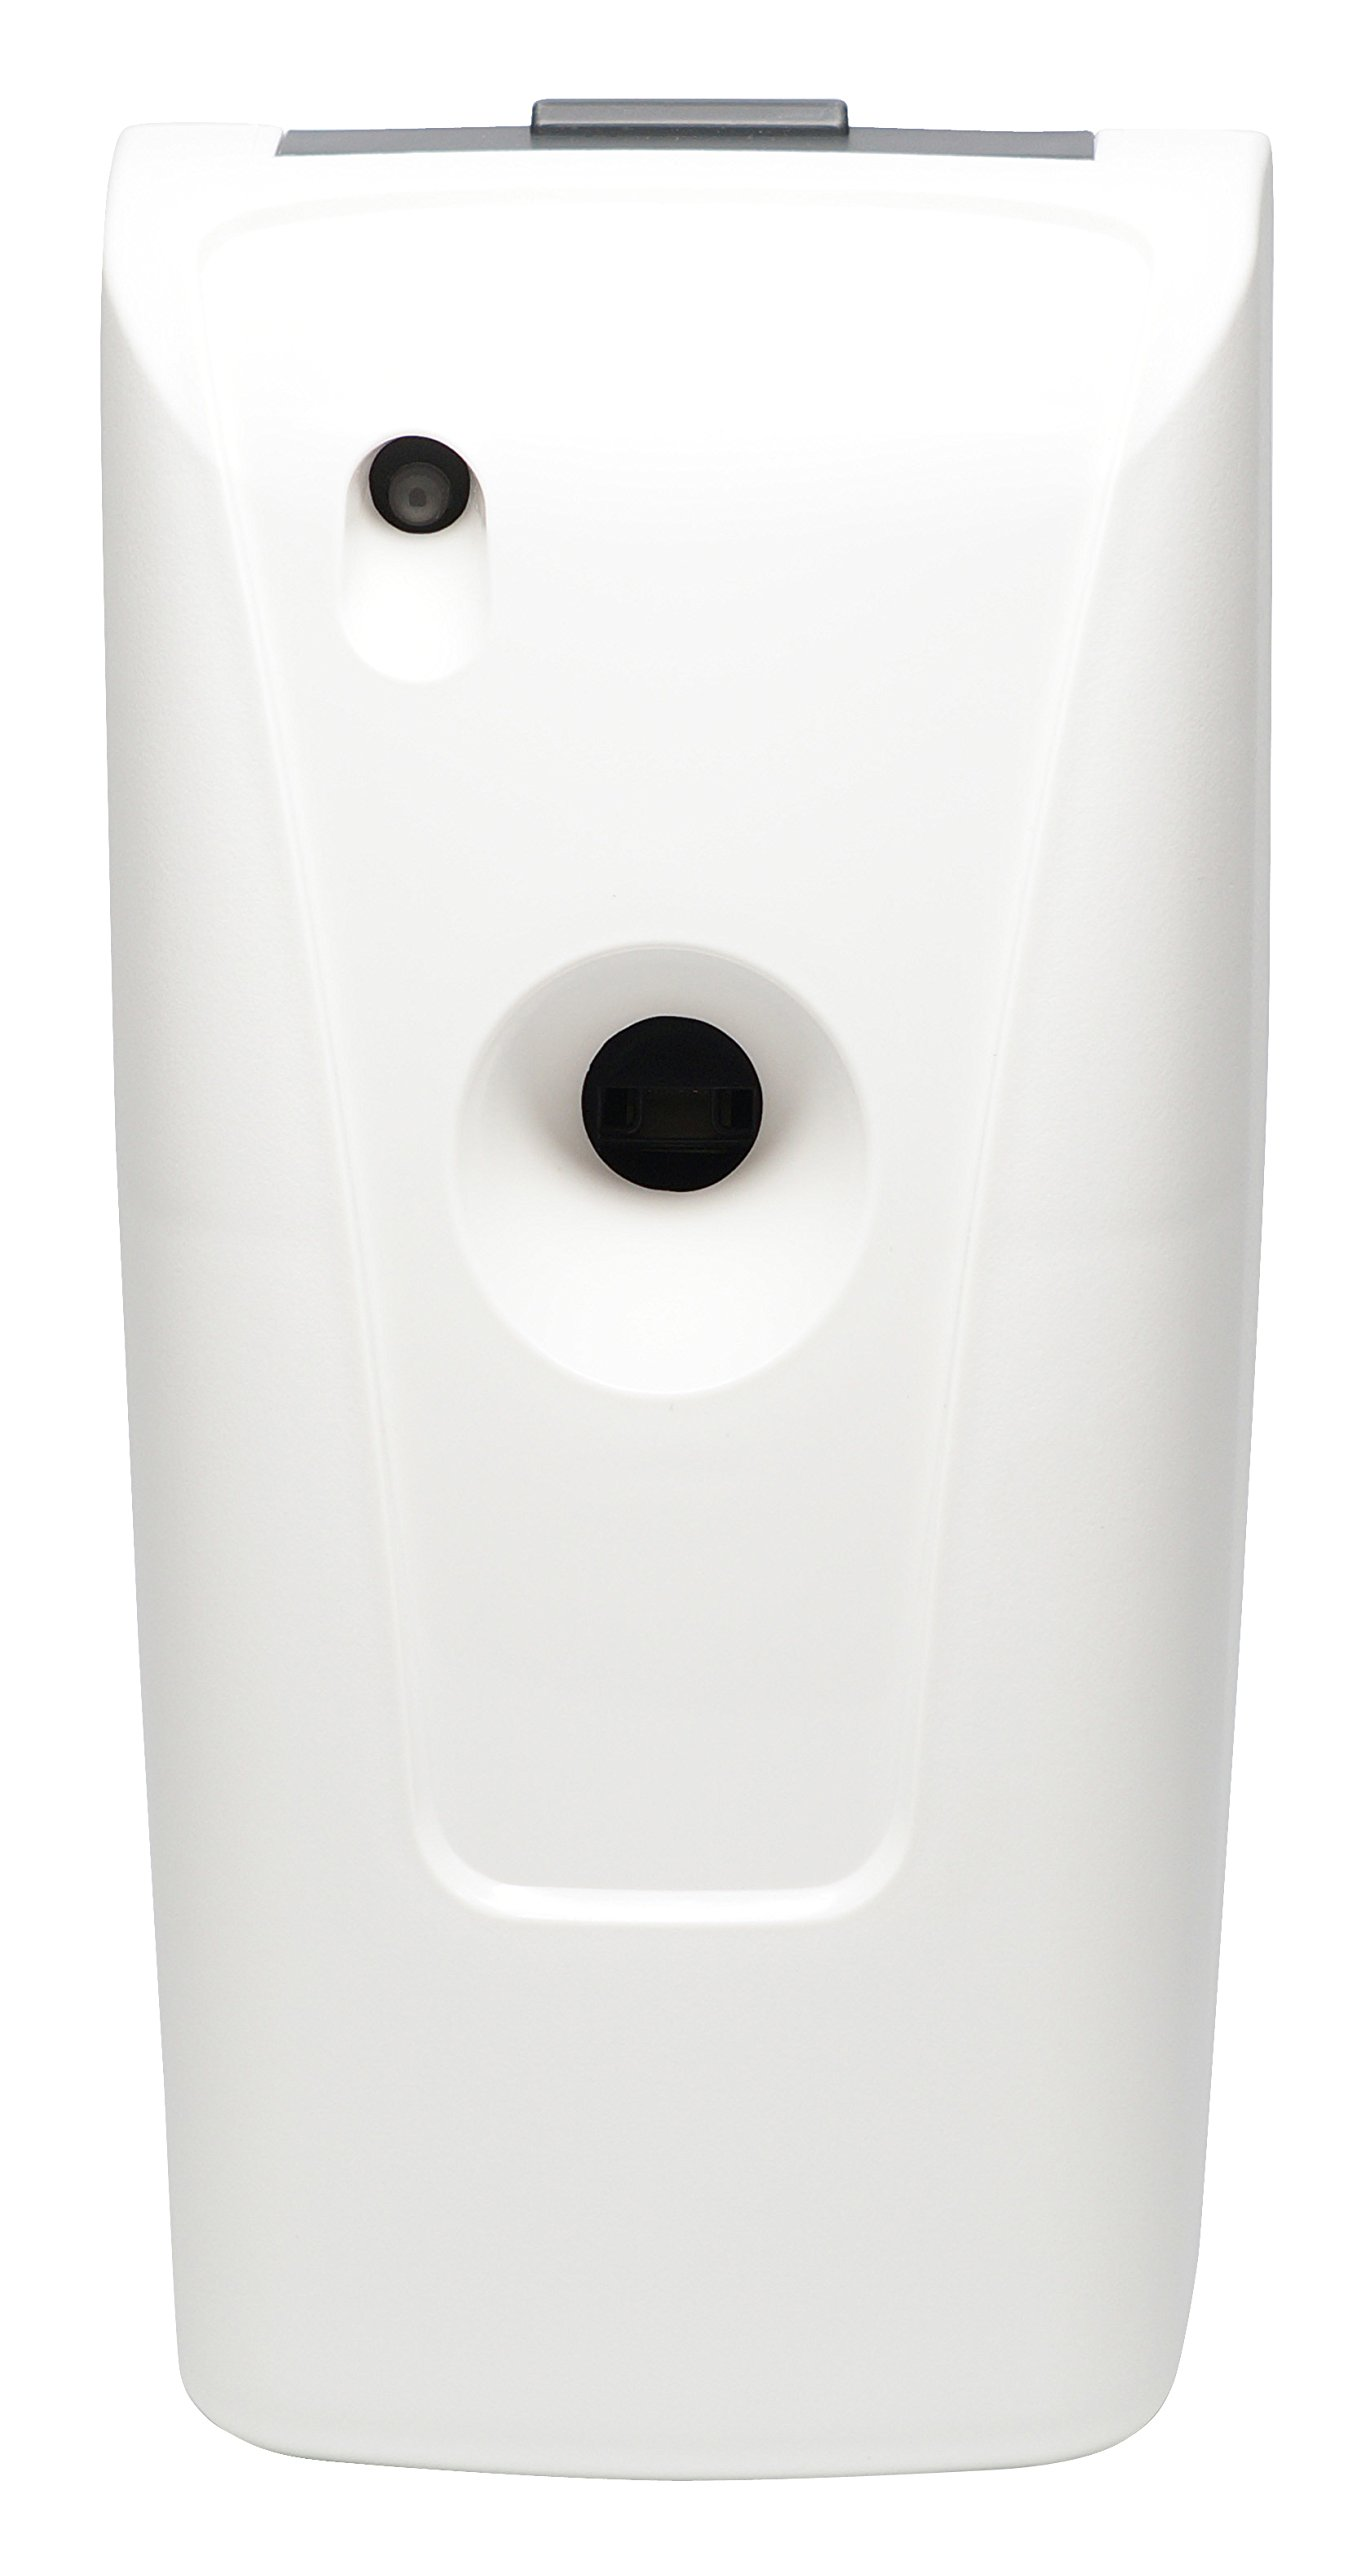 Big D 270 Standard Breeze Dispenser, Automatic Air Freshener with Piezo Technology - Ideal for restrooms, offices, schools, restaurants, hotels, stores